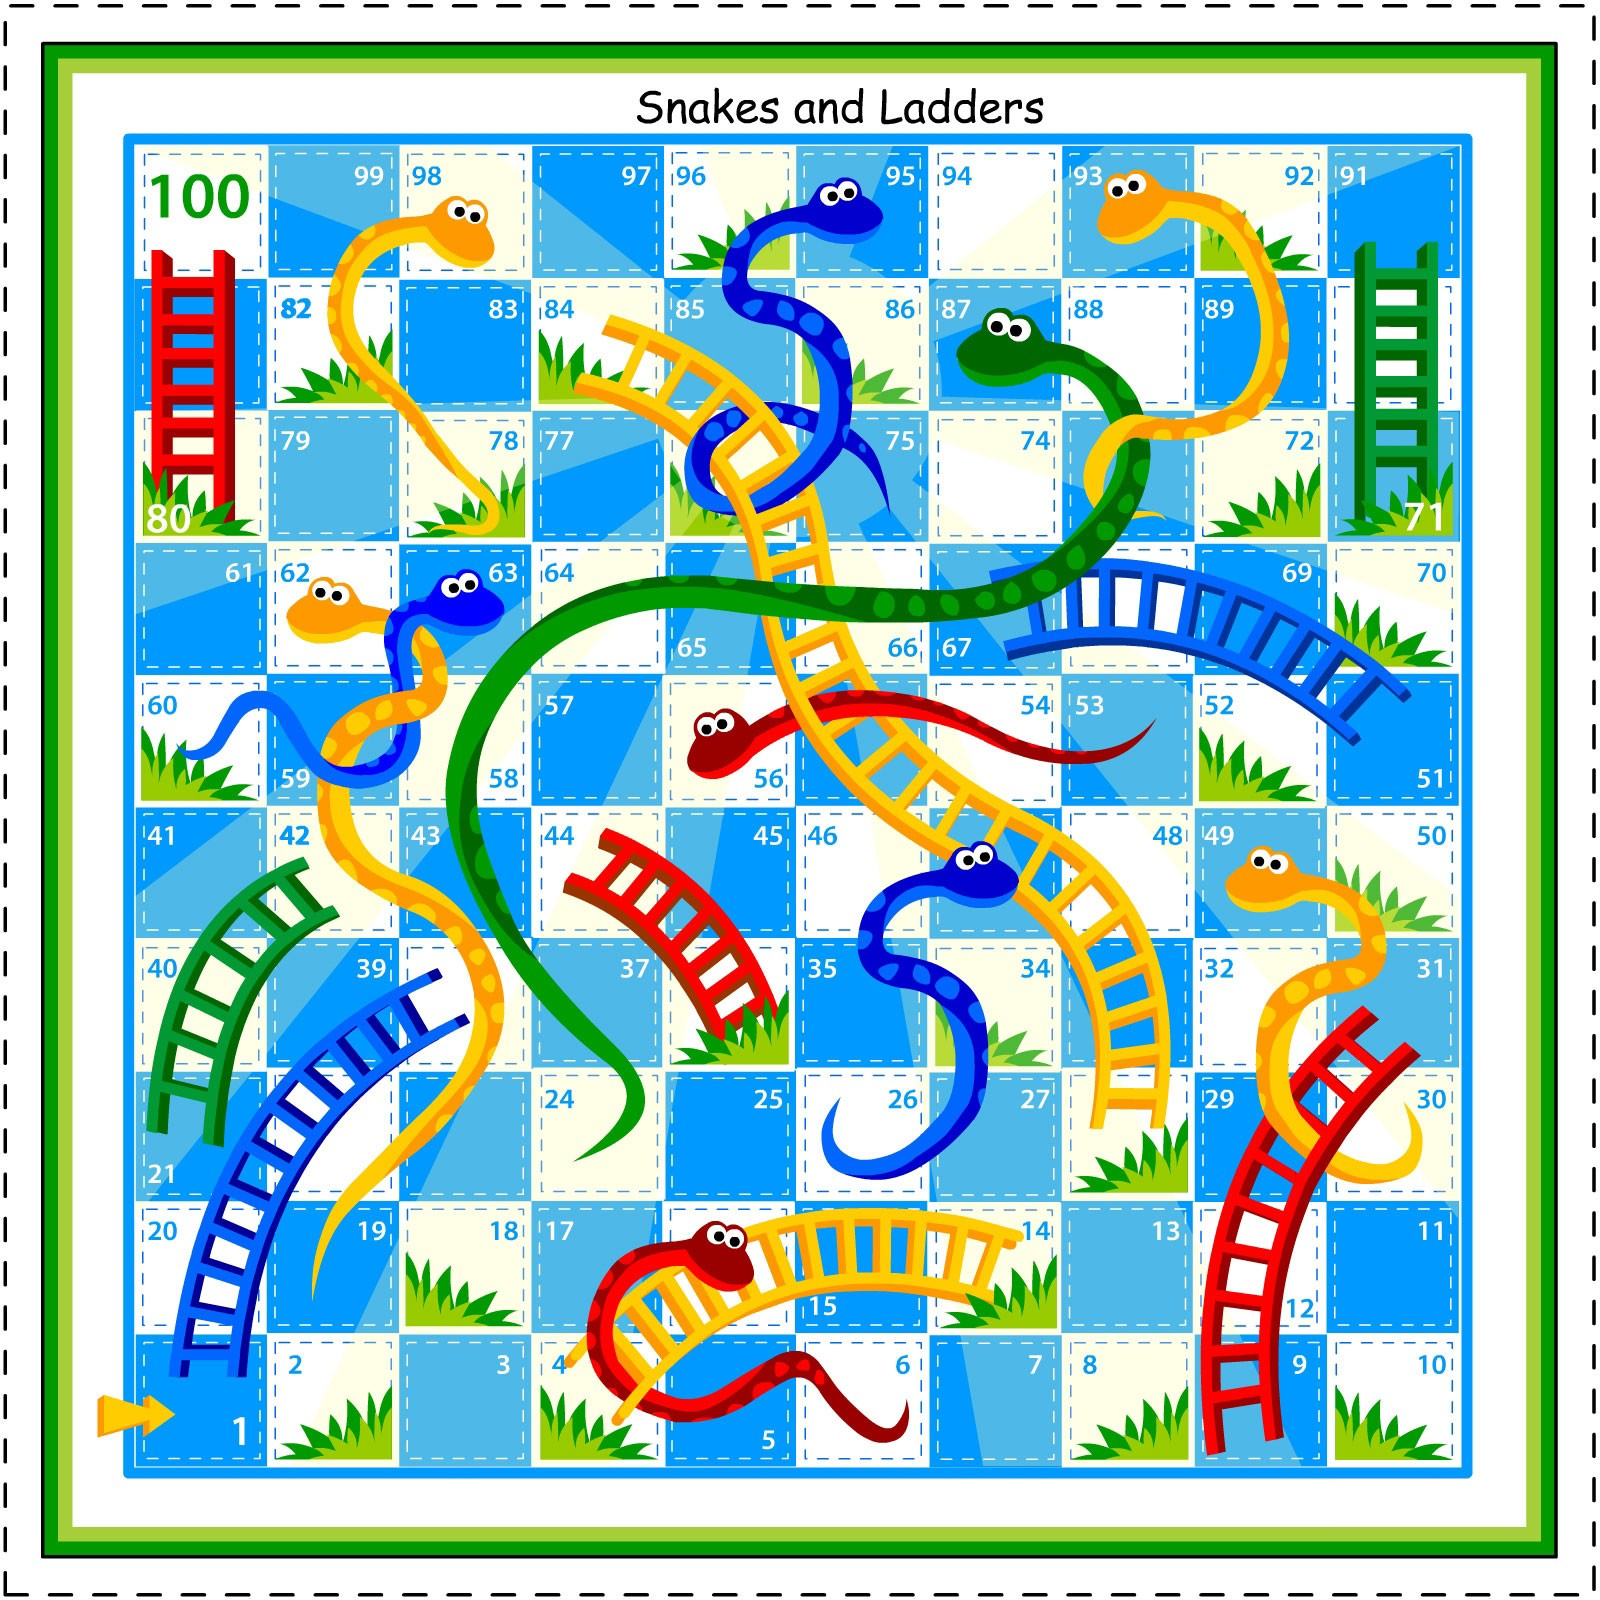 Printable-Snakes-and-Ladders-Board-Games.jpg